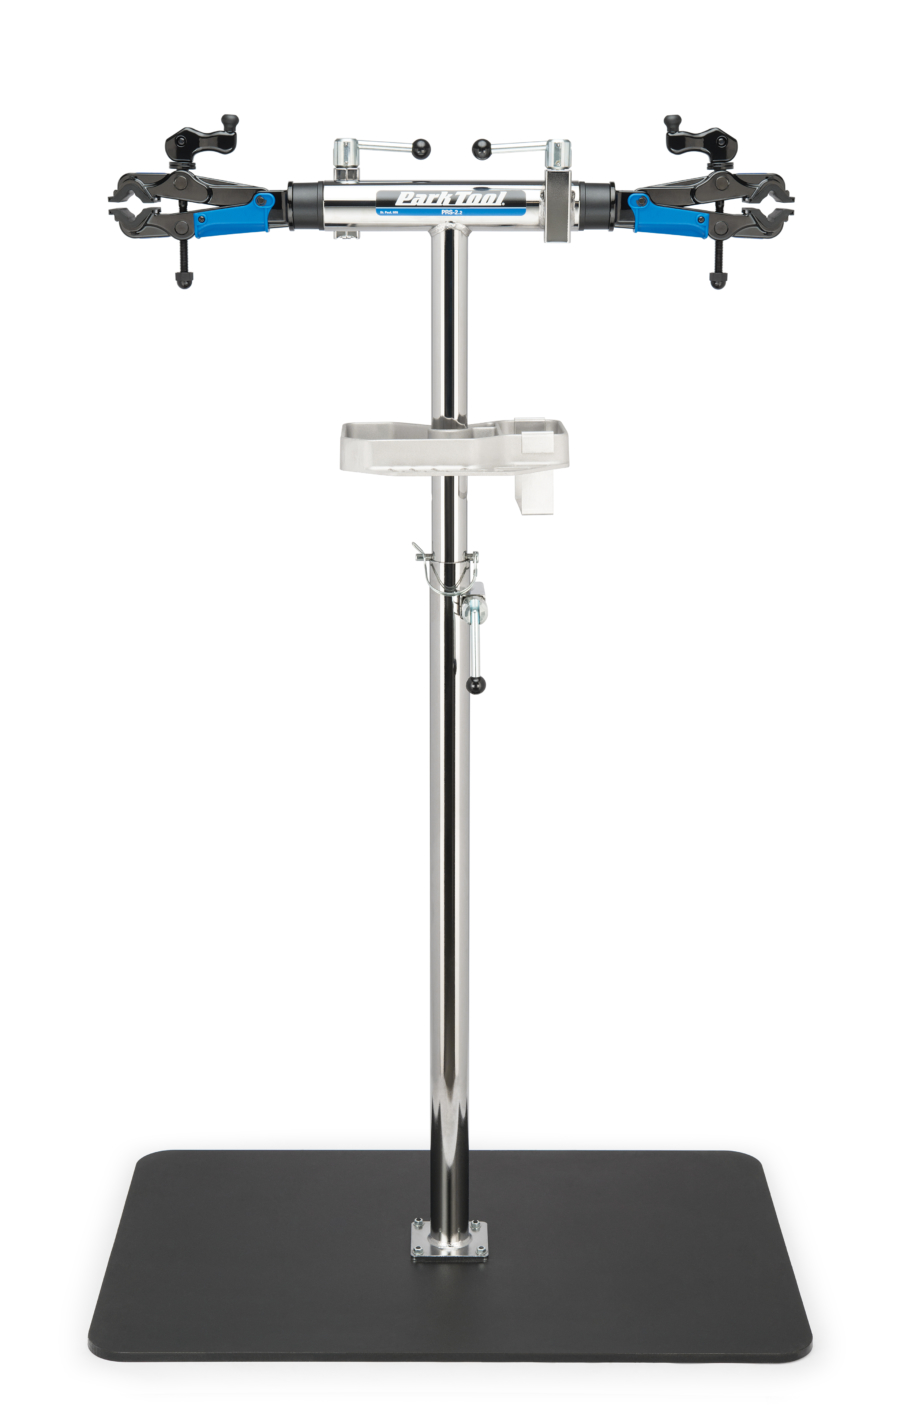 The Park Tool PRS-2.2-2 Deluxe Double Arm Repair Stand with stand base, enlarged